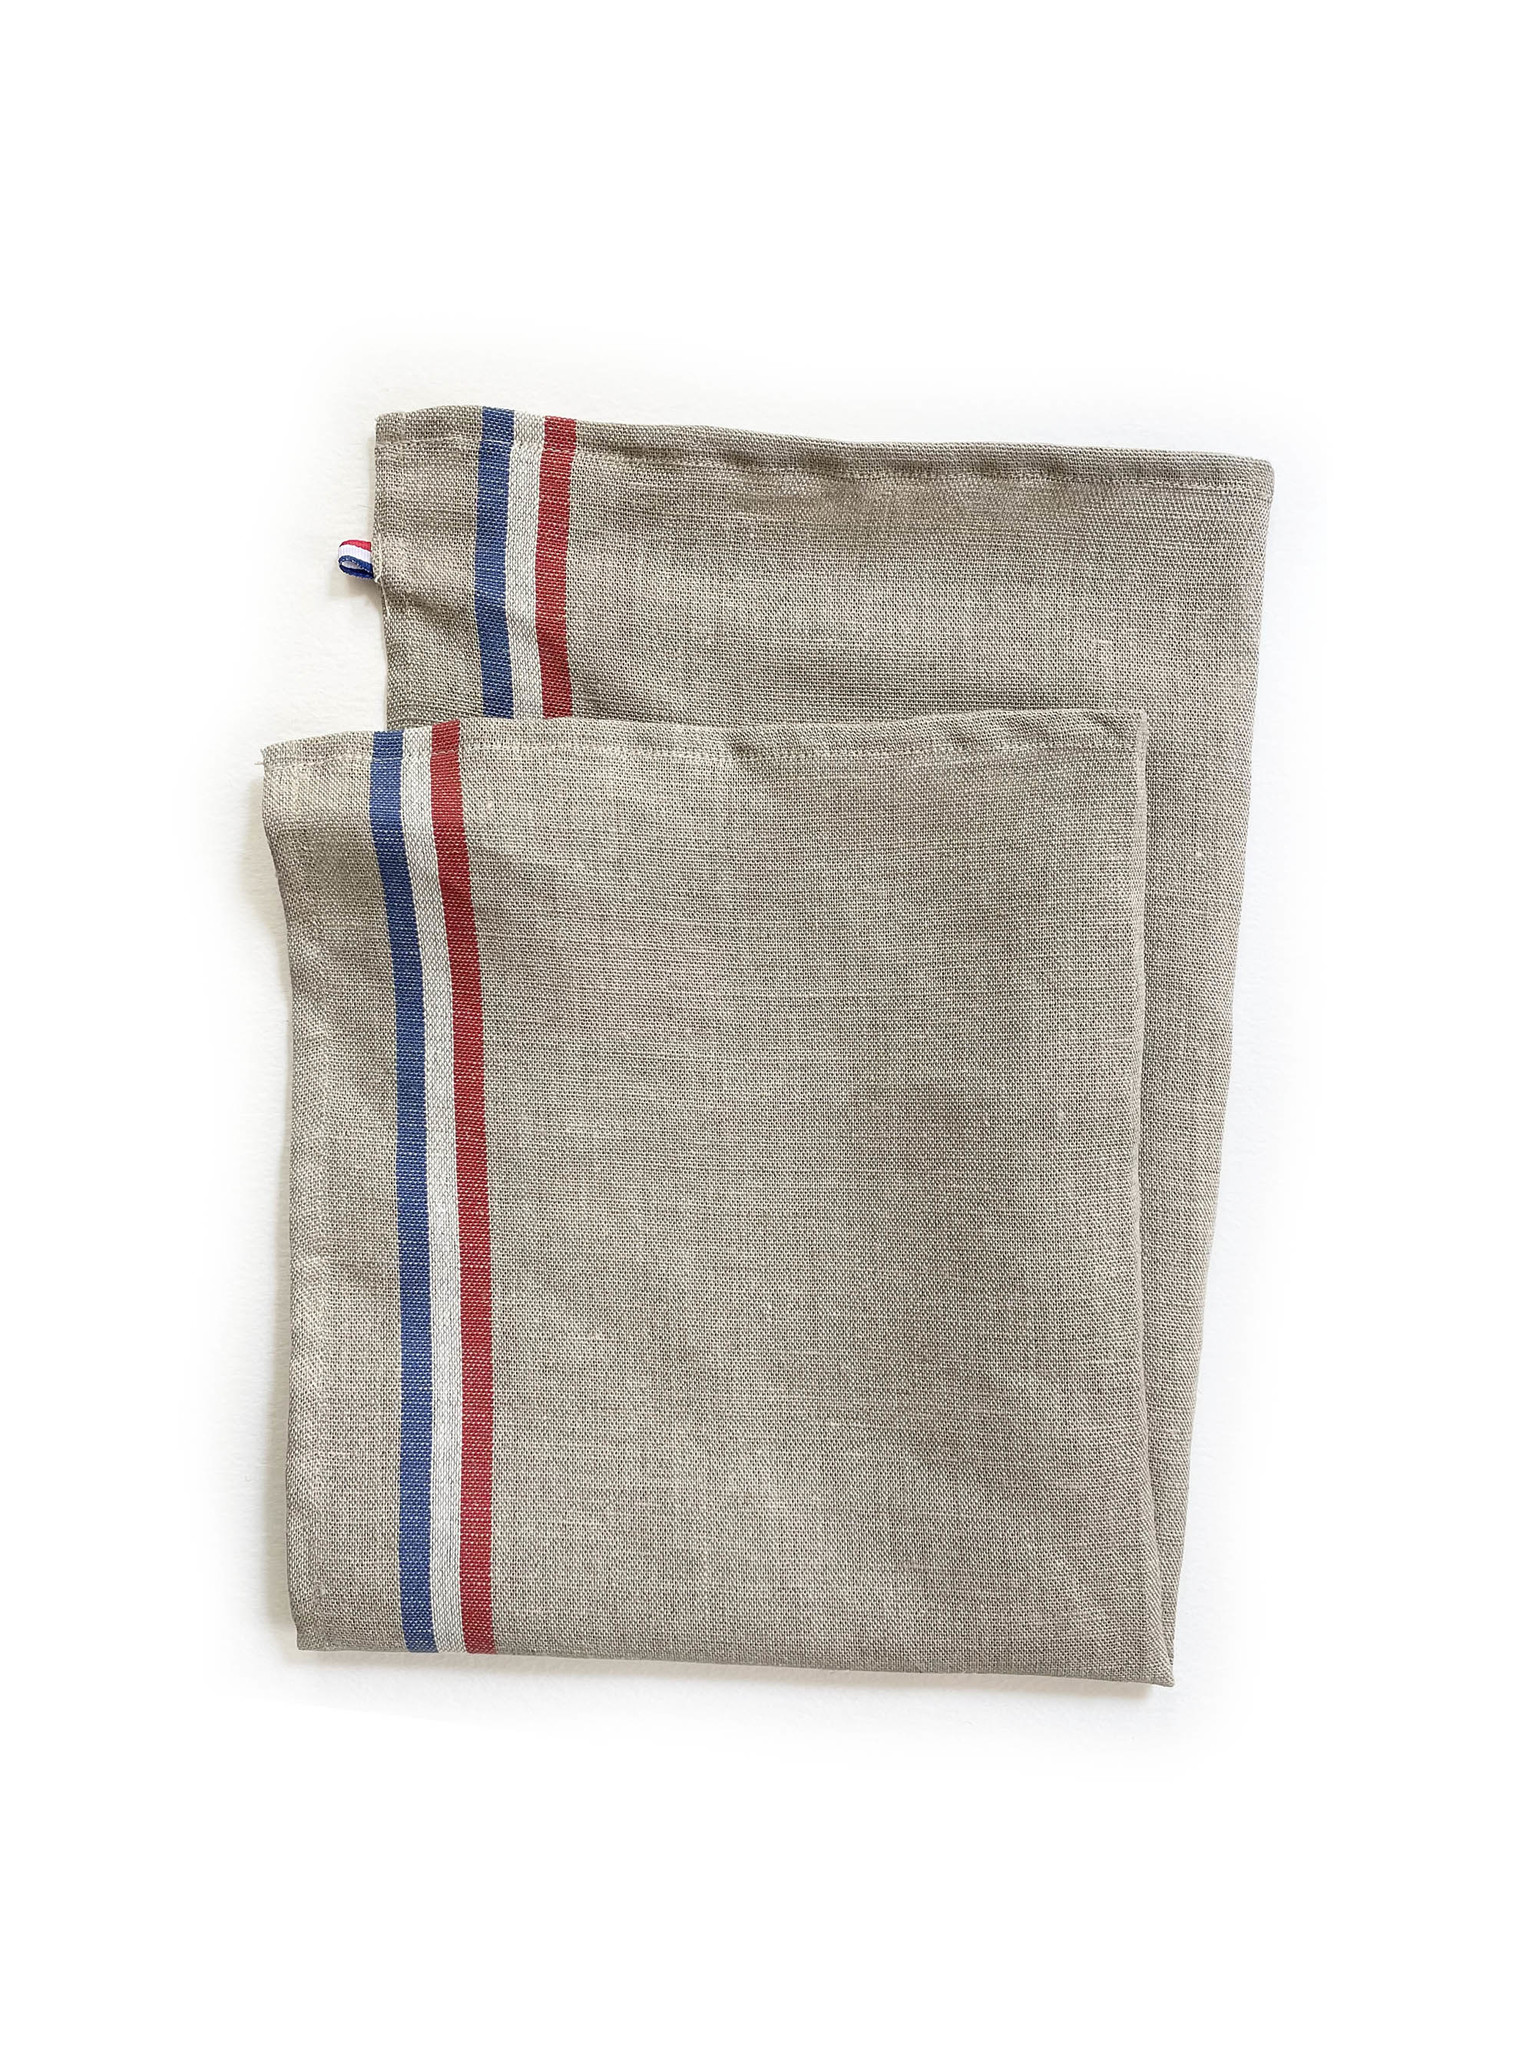 Coucke 95% Linen Kitchen Towel, Natural with Red White & Blue Stripe-1